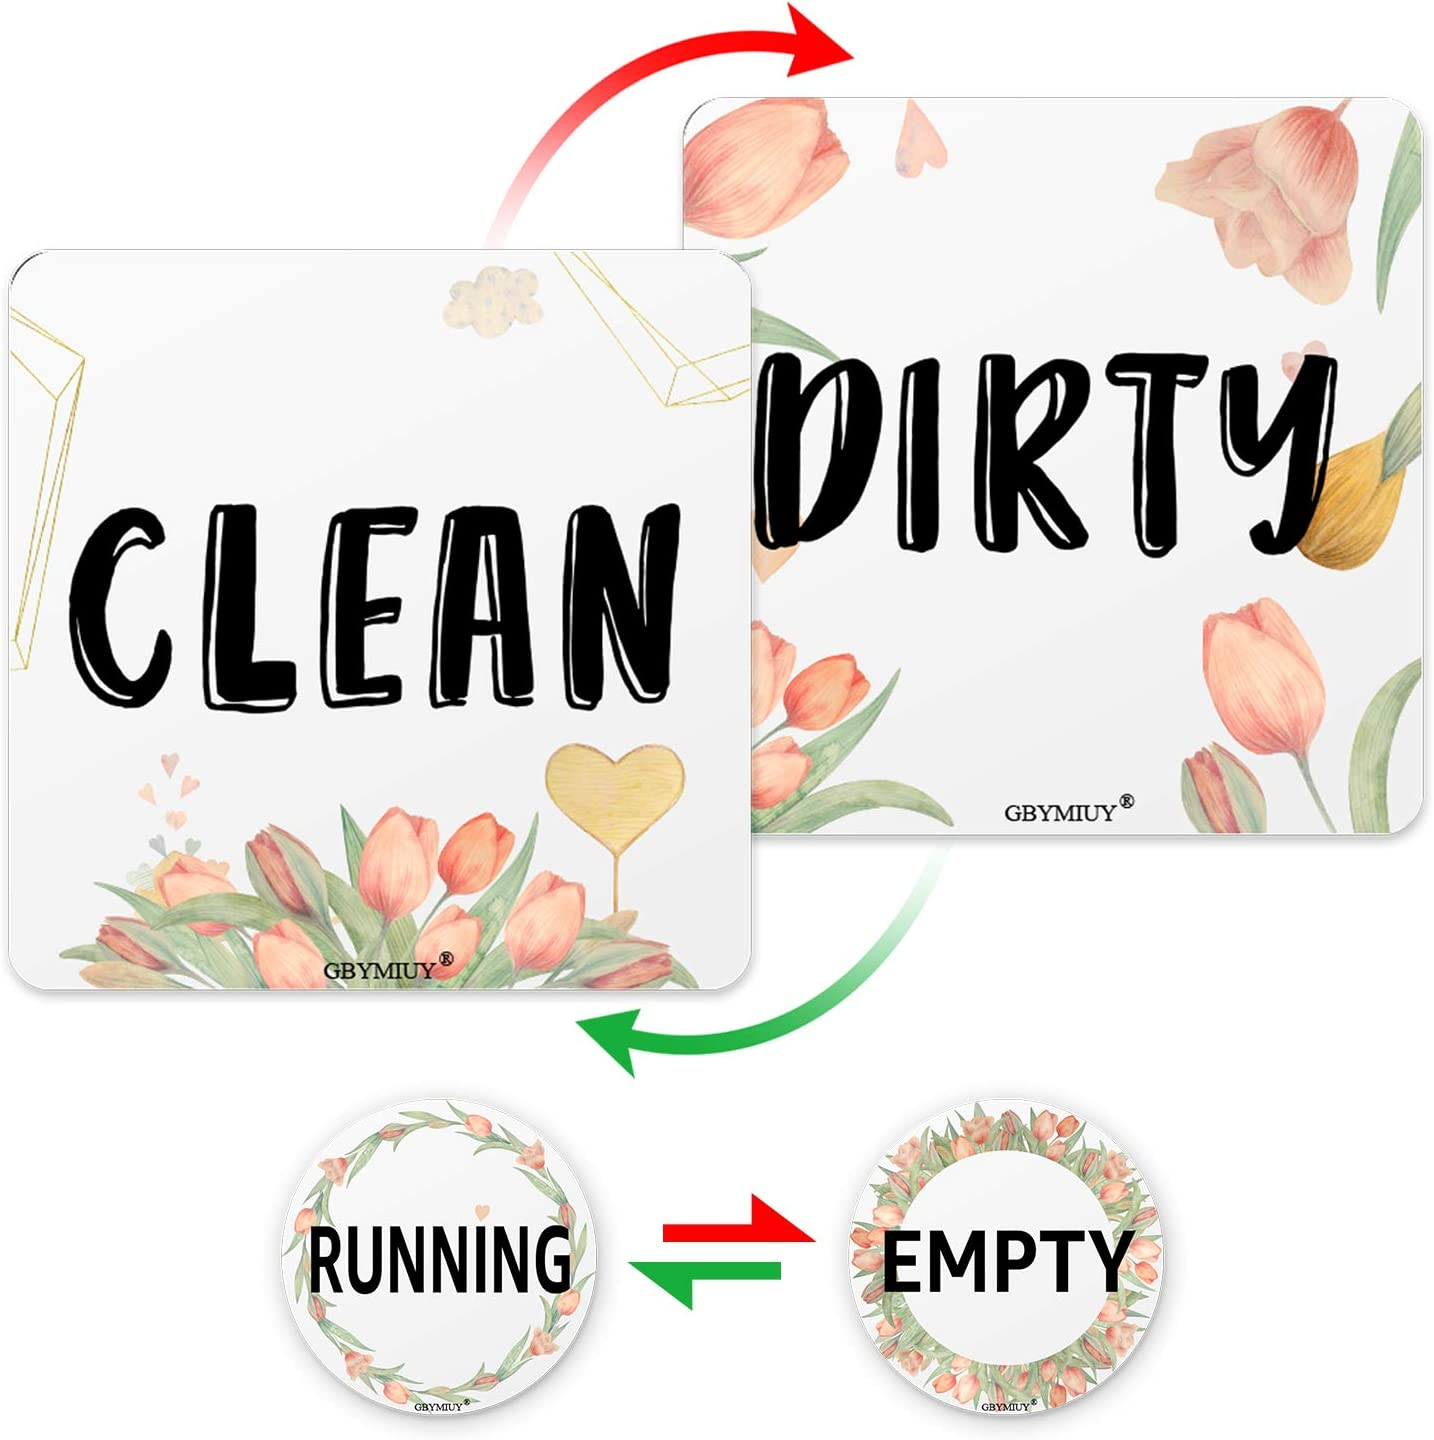 Clean Dirty Dishwasher Magnet with Round Empty Running Flip Sign, 3.5x3.5inches Cute Floral Double Sided Reversible Sign, Dishwasher Accessories, Kitchen Label for Home Organization